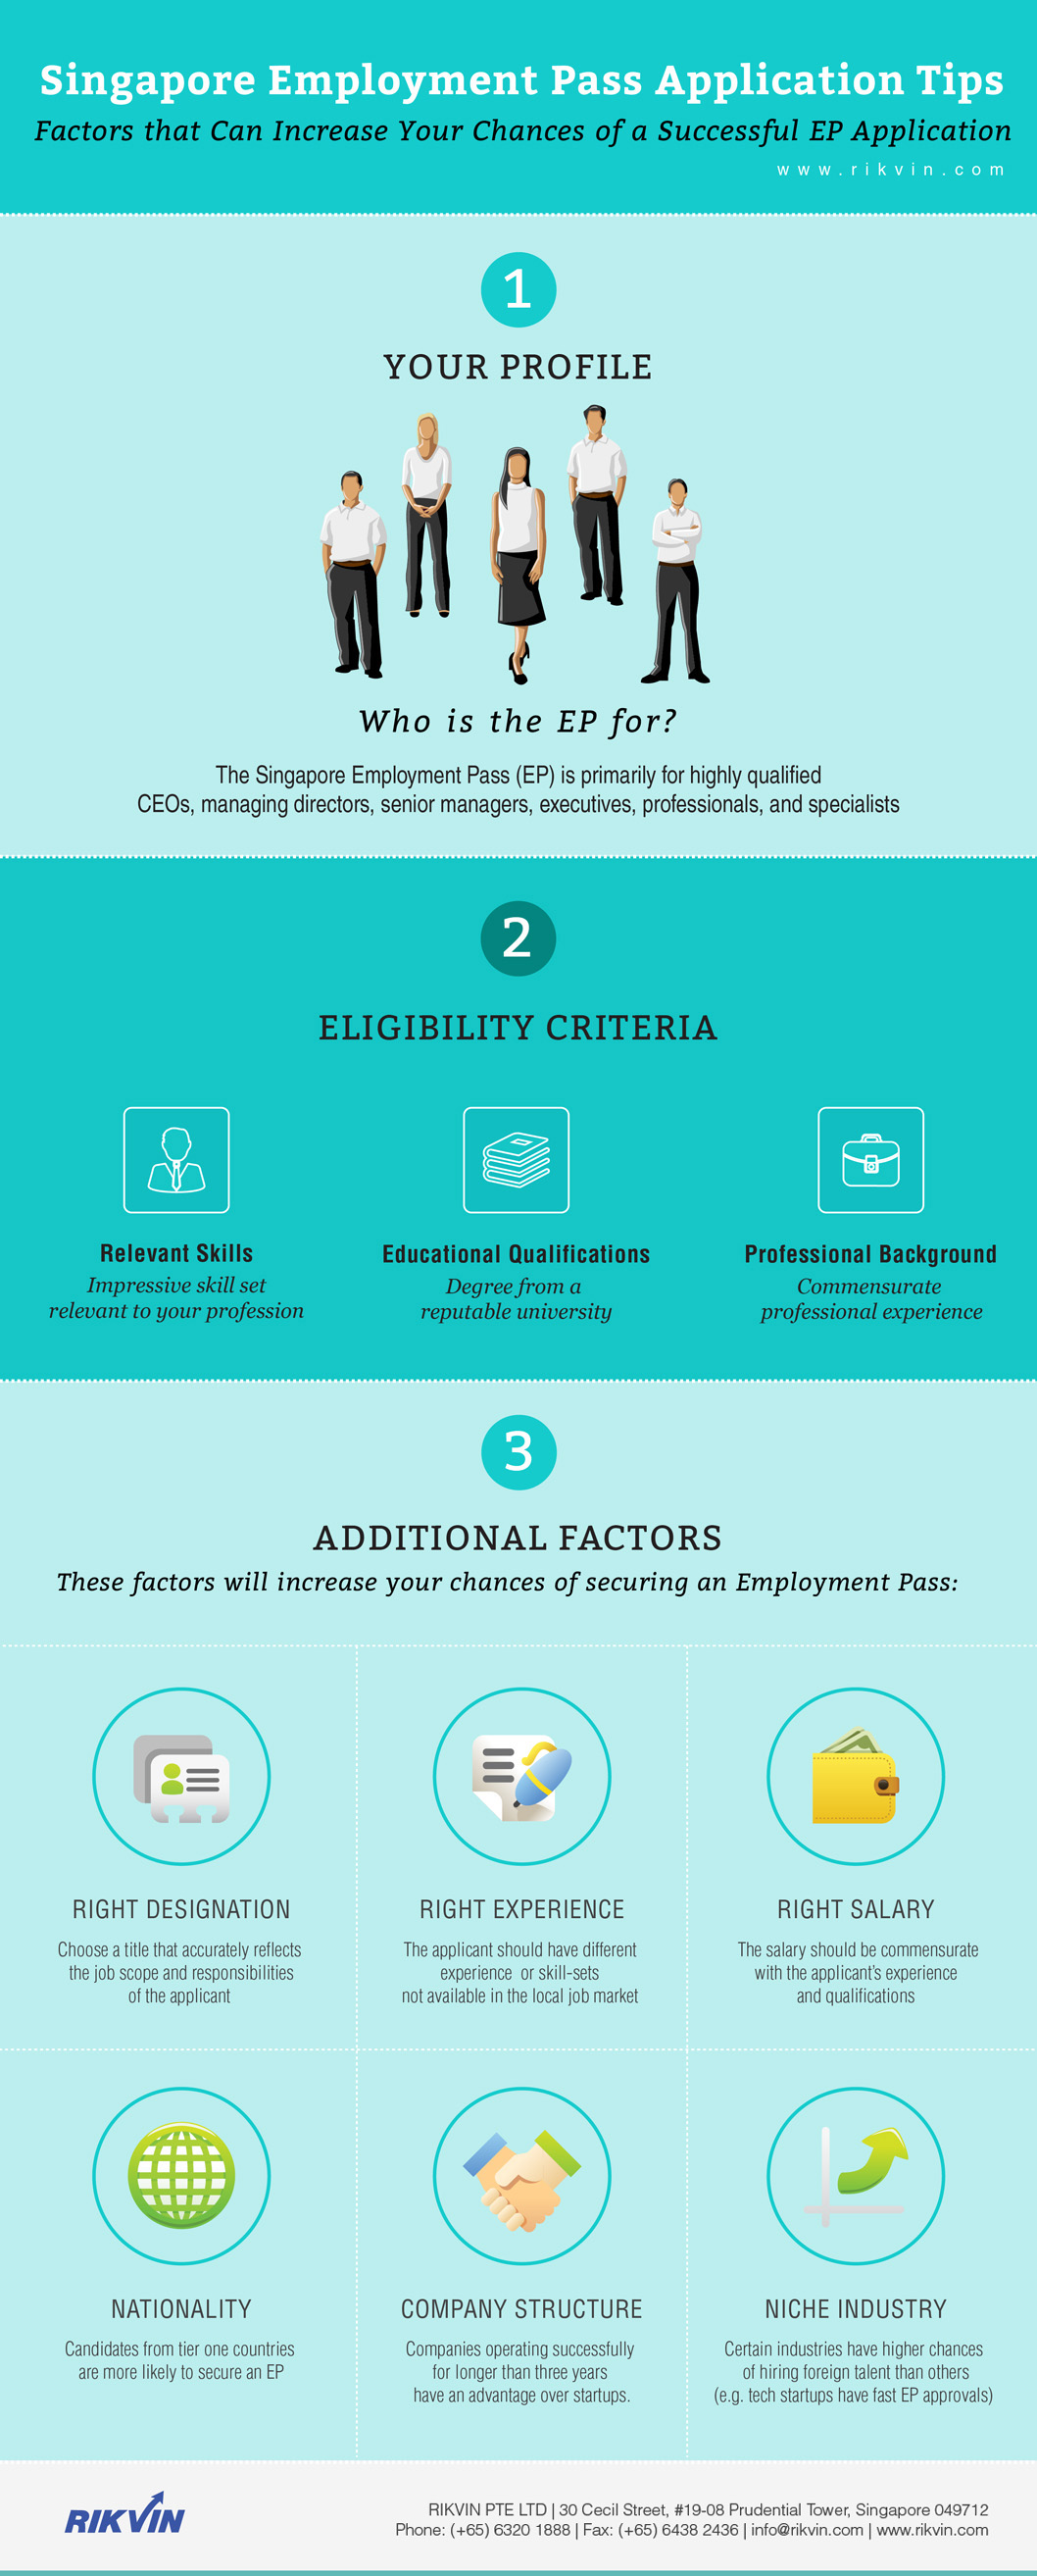 tips-for-successful-employment-pass-application1 How to Increase Your Chances of a Successful Singapore Employment Pass Application